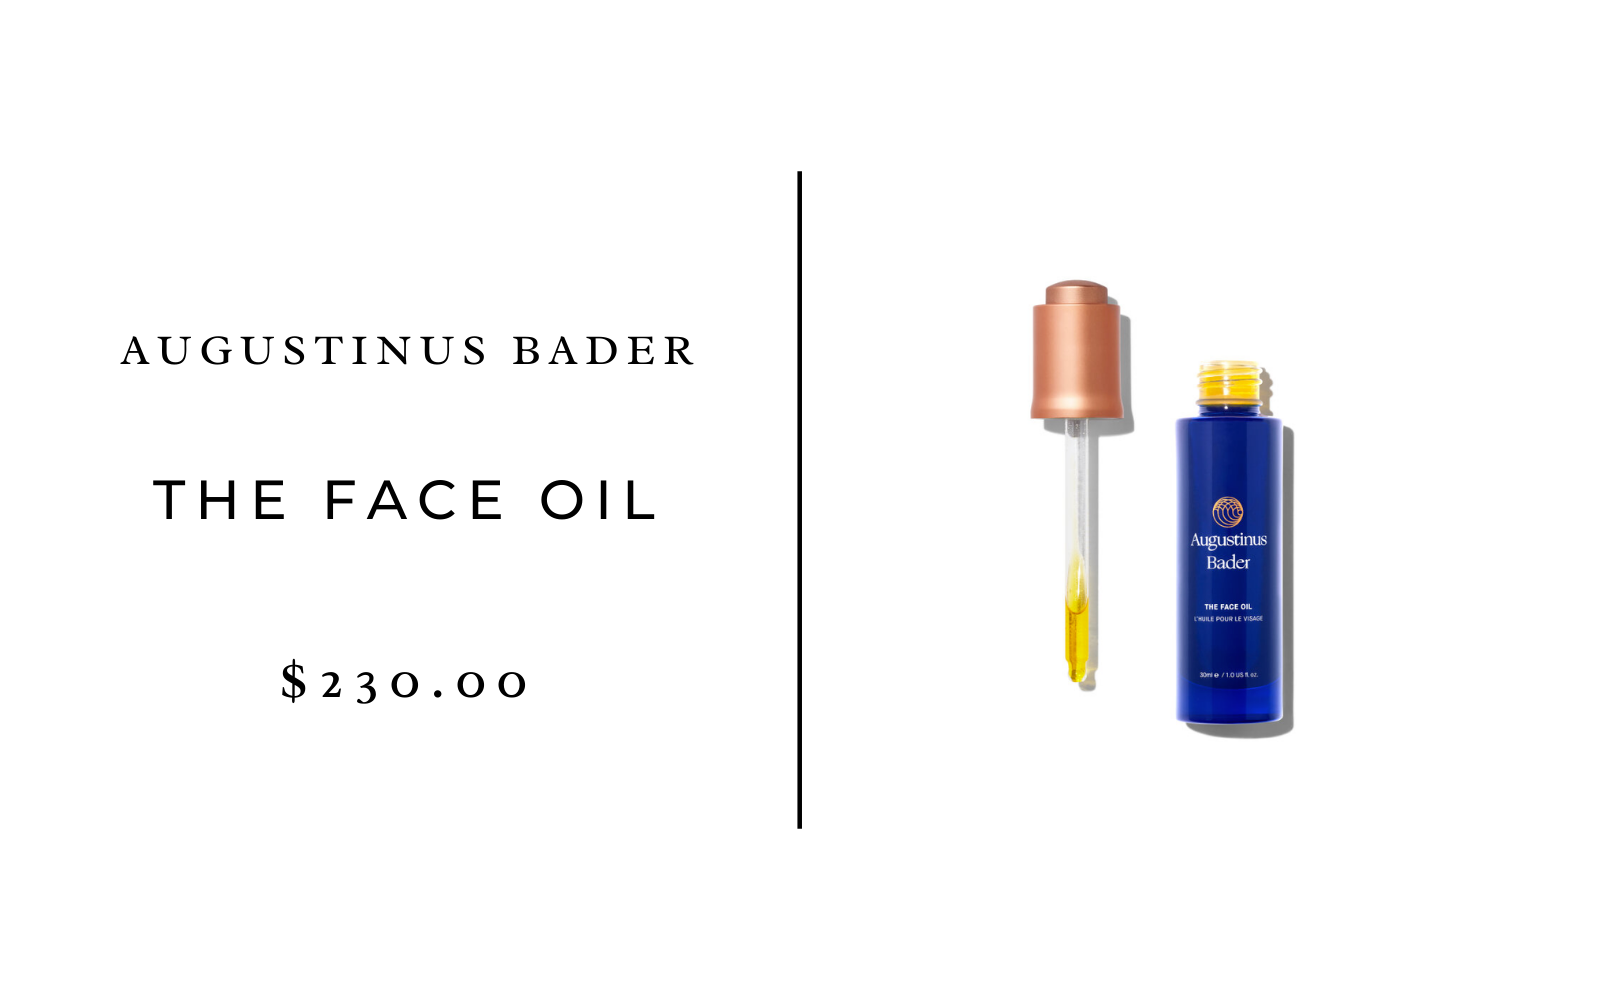 Augustinus Bader The Face Oil